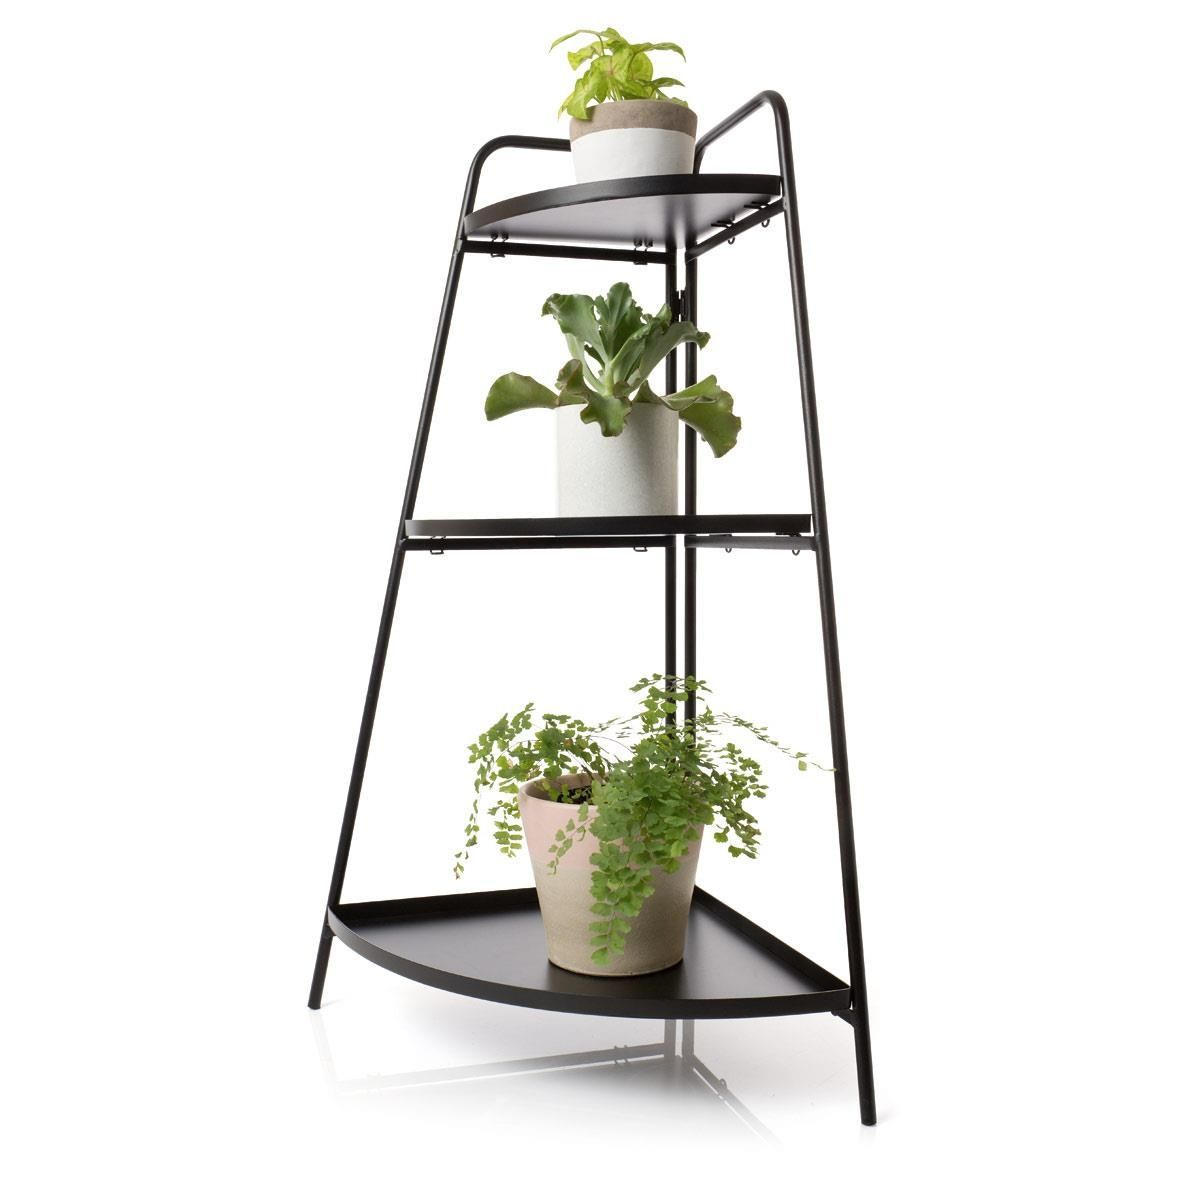 corner Plant Stand 3 Tierhome & Co-Balcony accents